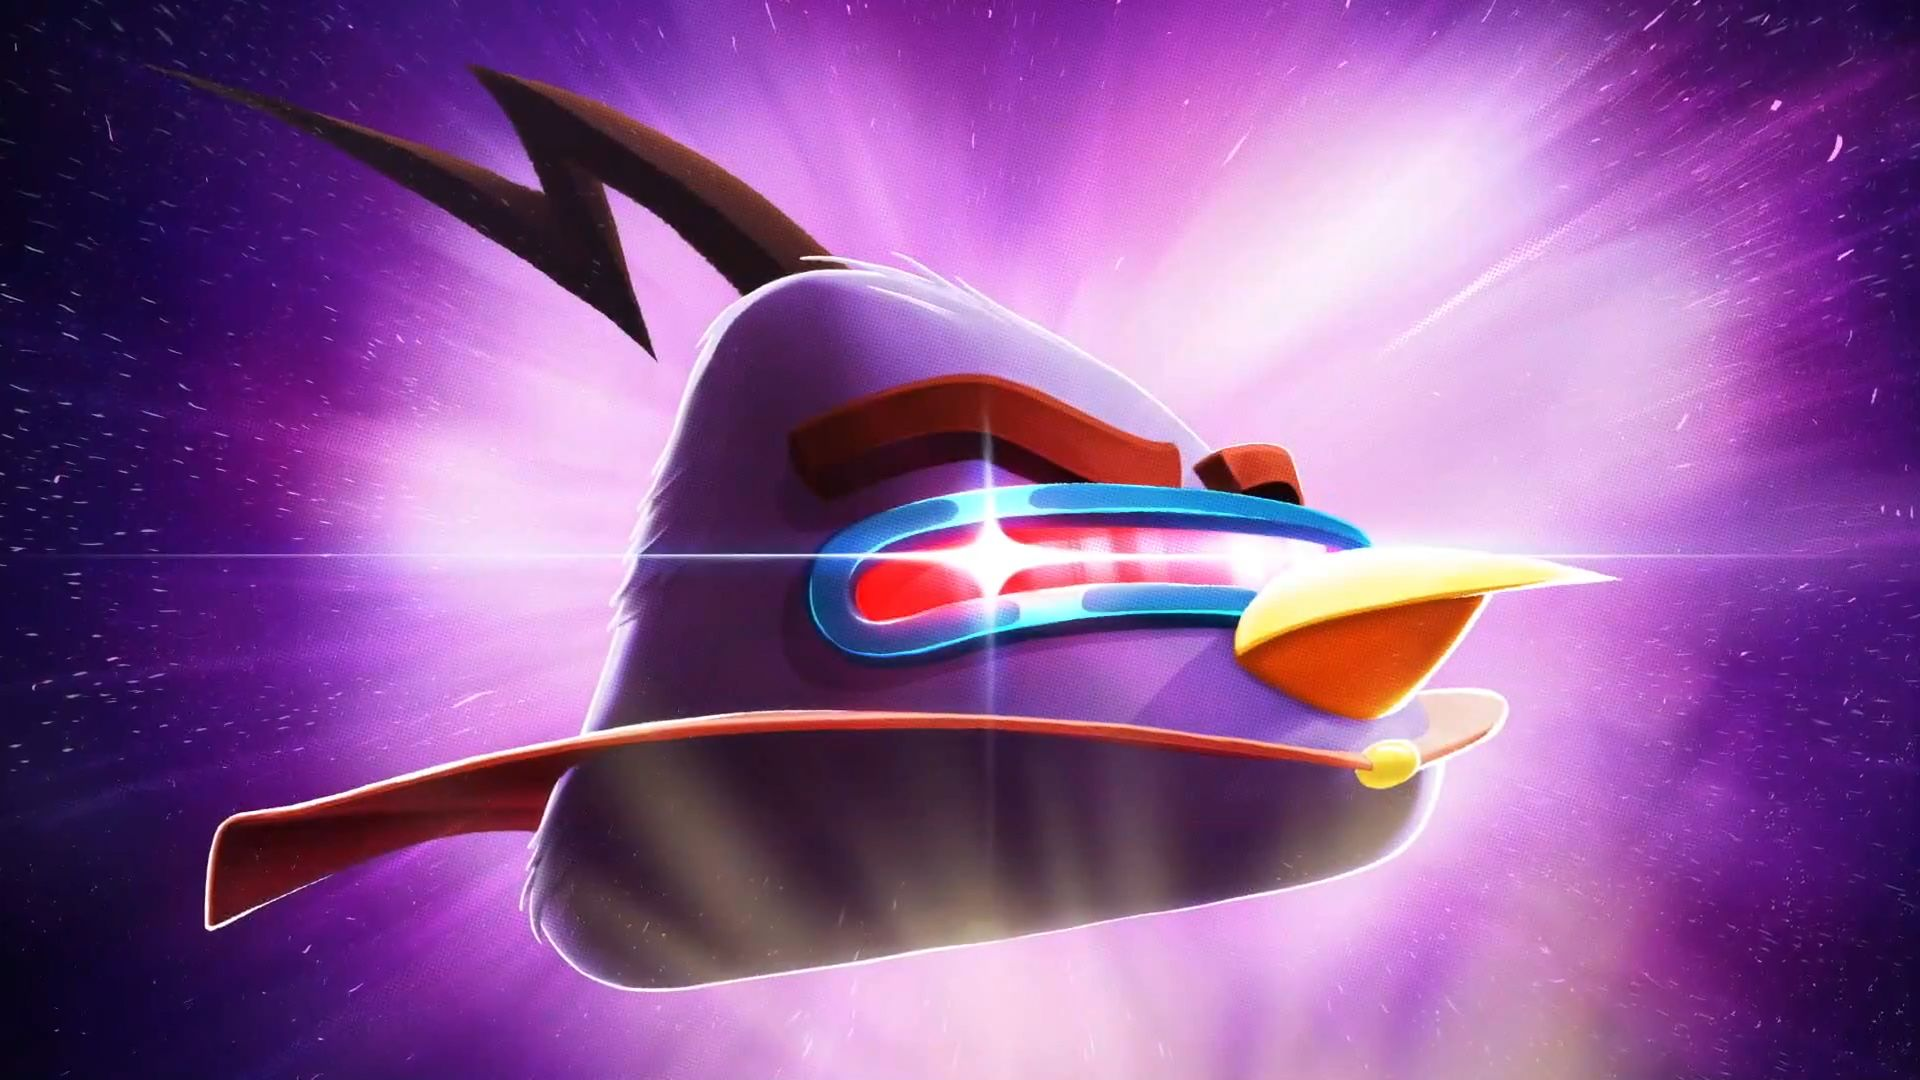 Download free HD Angry Bird Space 3D Wallpaper, image